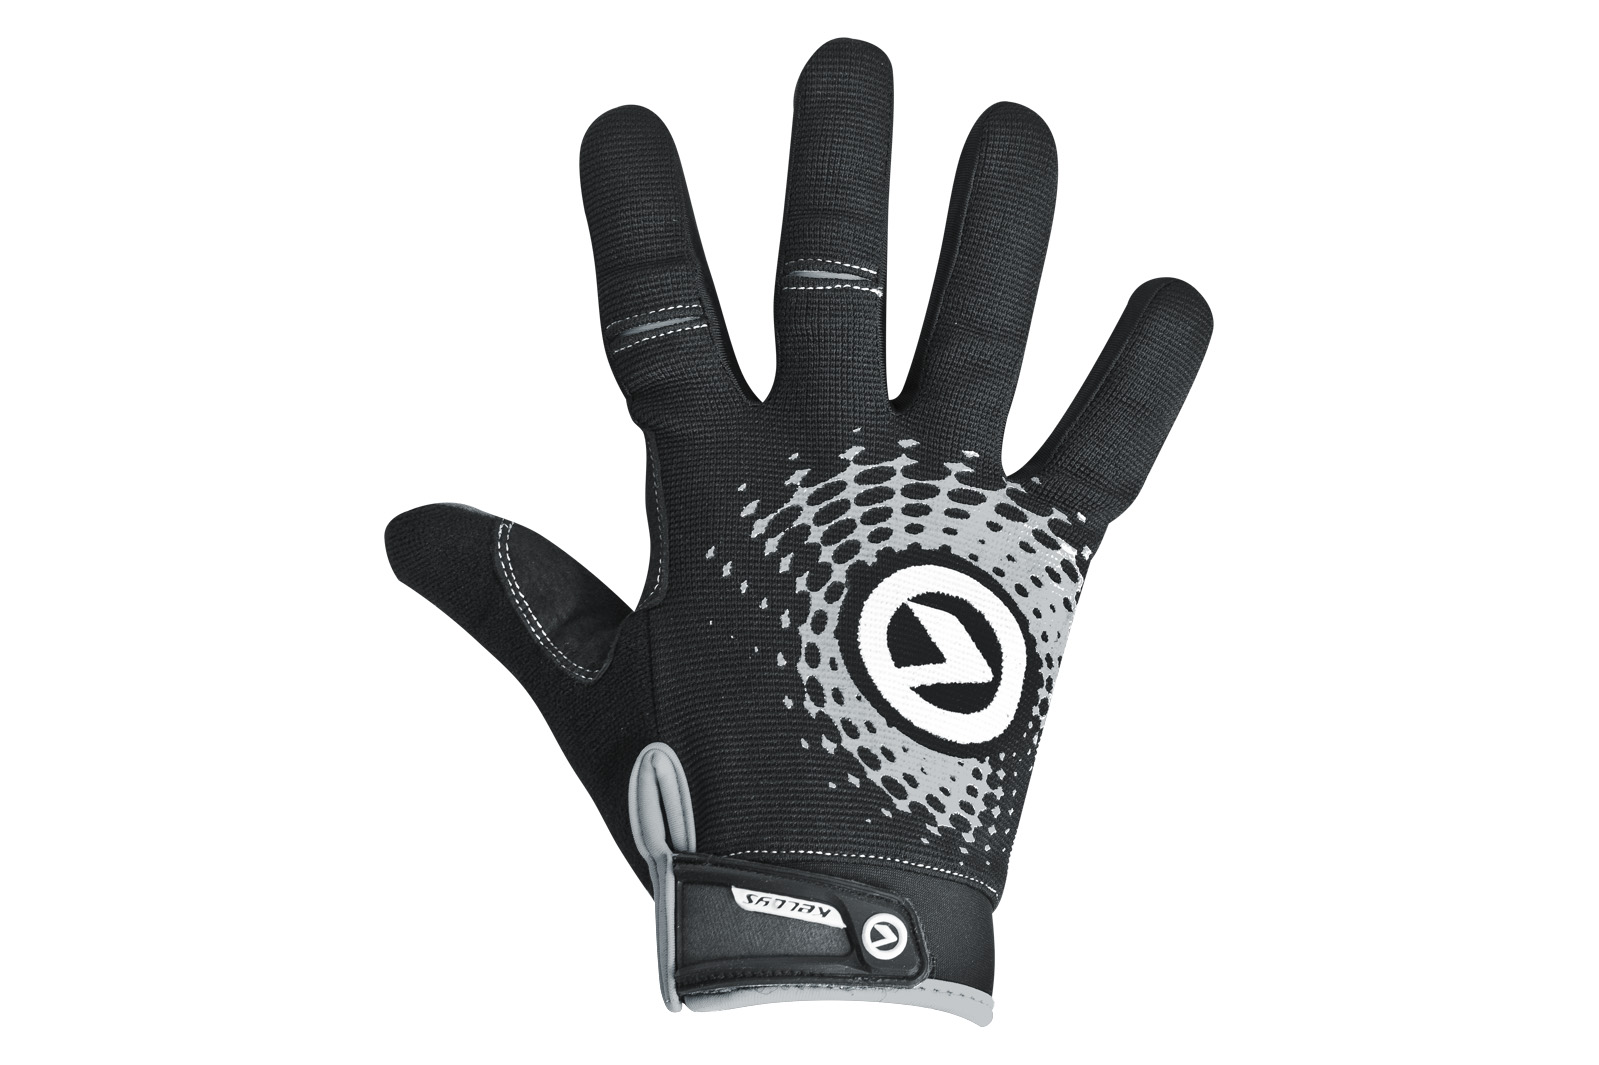 Handschuhe IMPACT long black-grey L - Handschuhe IMPACT long black-grey L